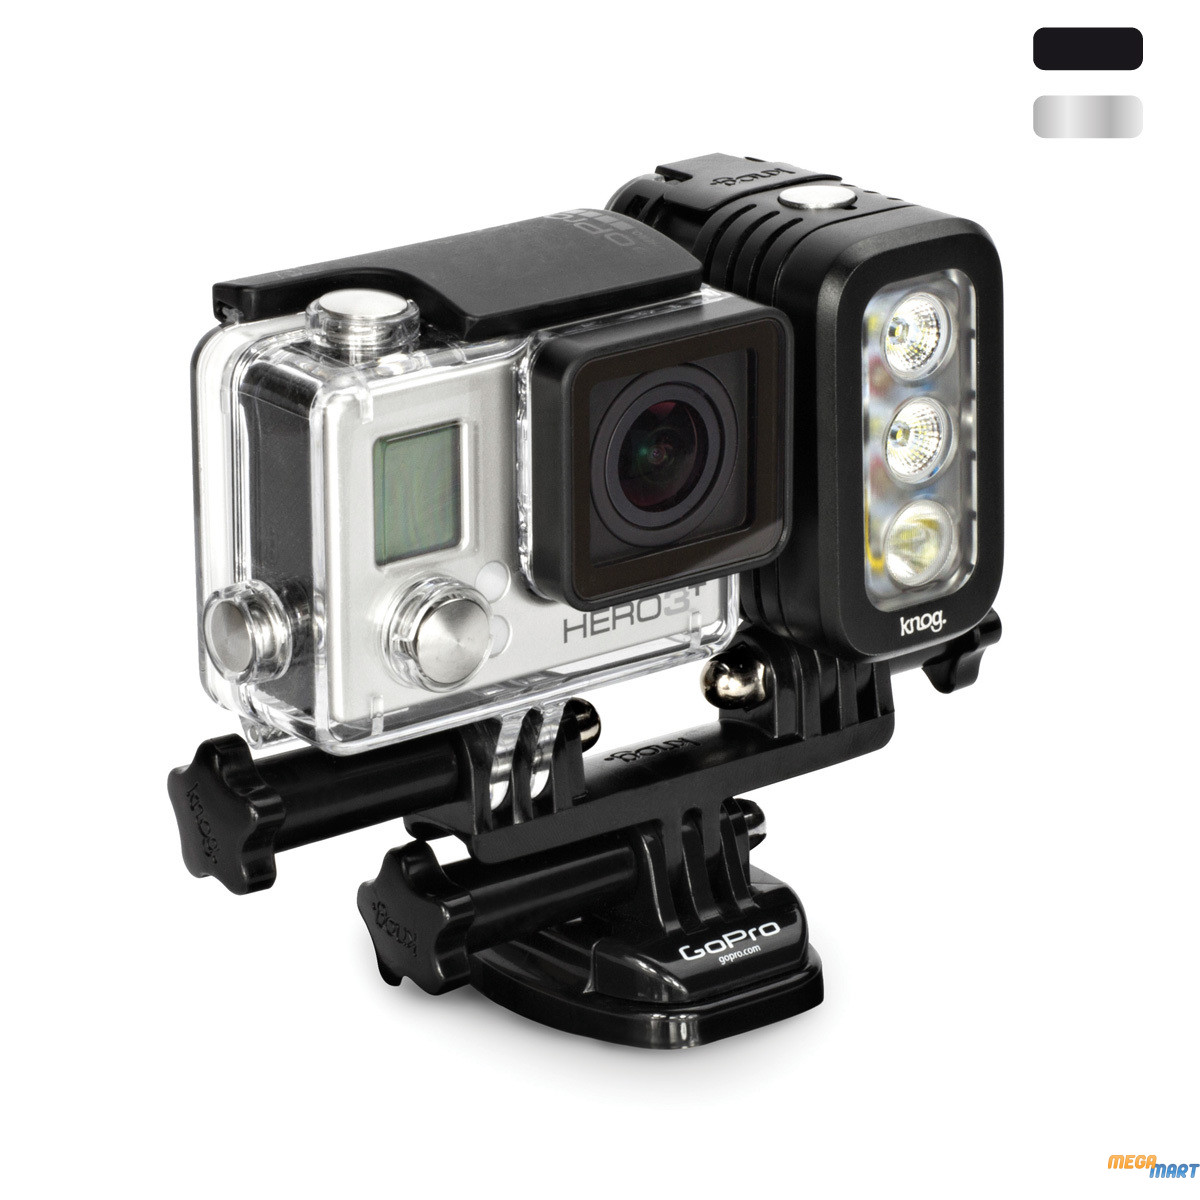 GoPro Qudos Action Black